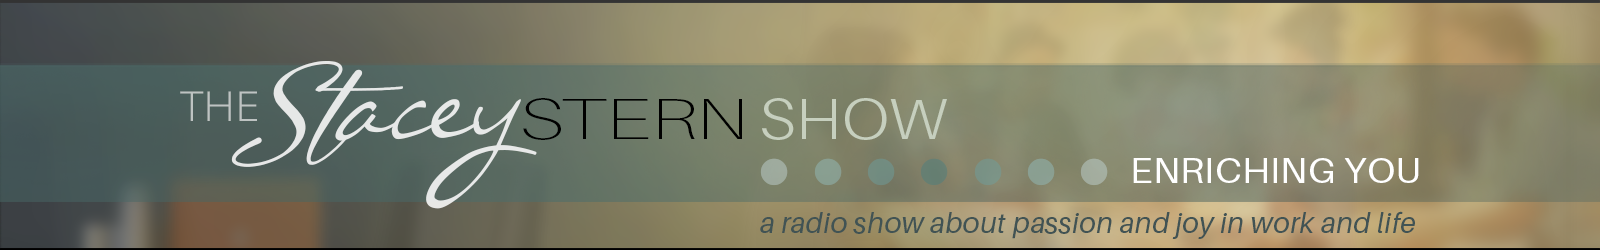 Stacey Stern Consulting Radio Show page header graphic image